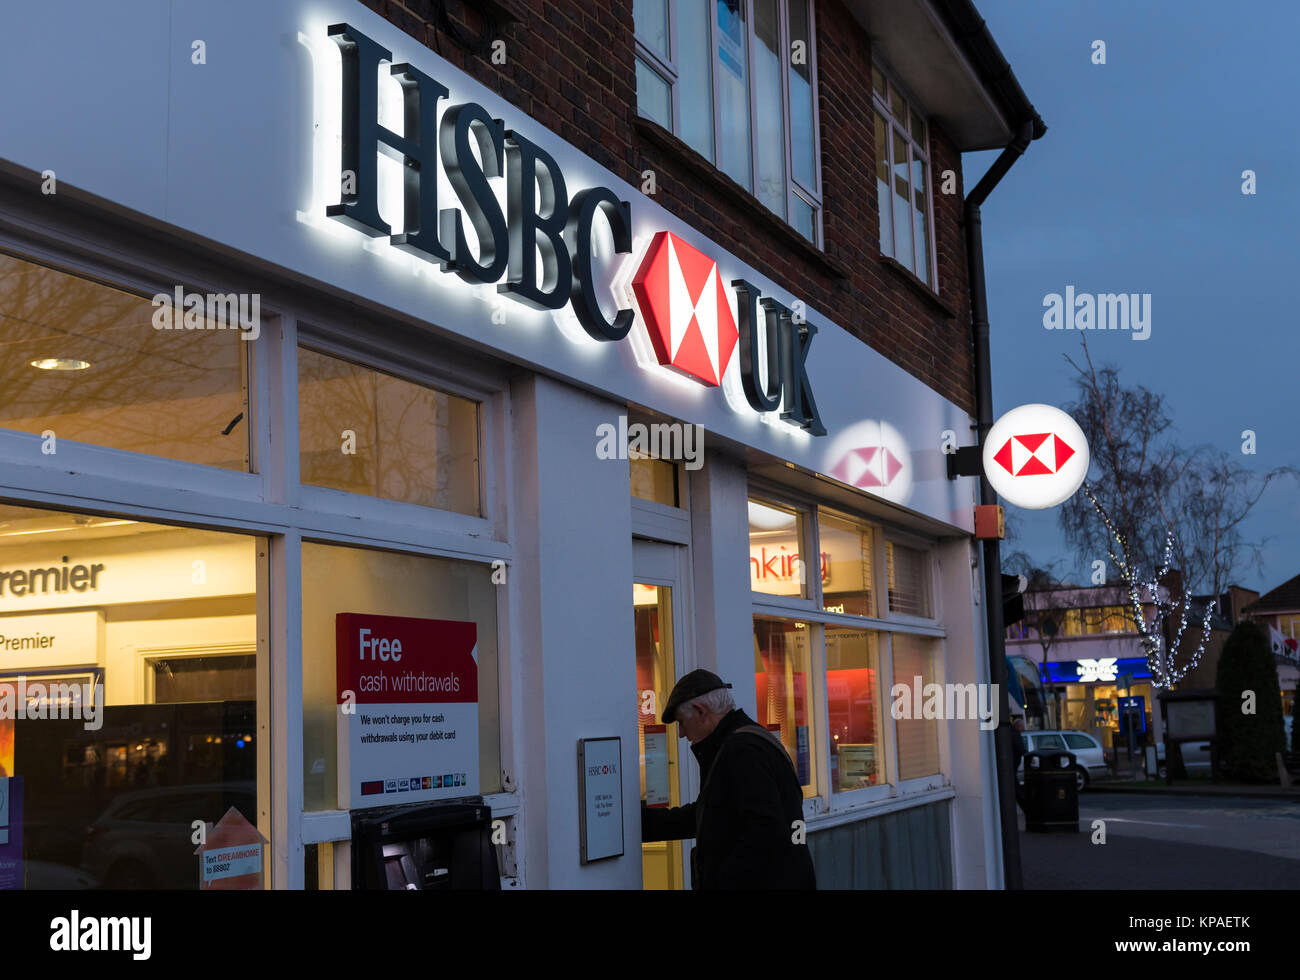 Hsbc Branch Uk Stock Photos & Hsbc Branch Uk Stock Images ...